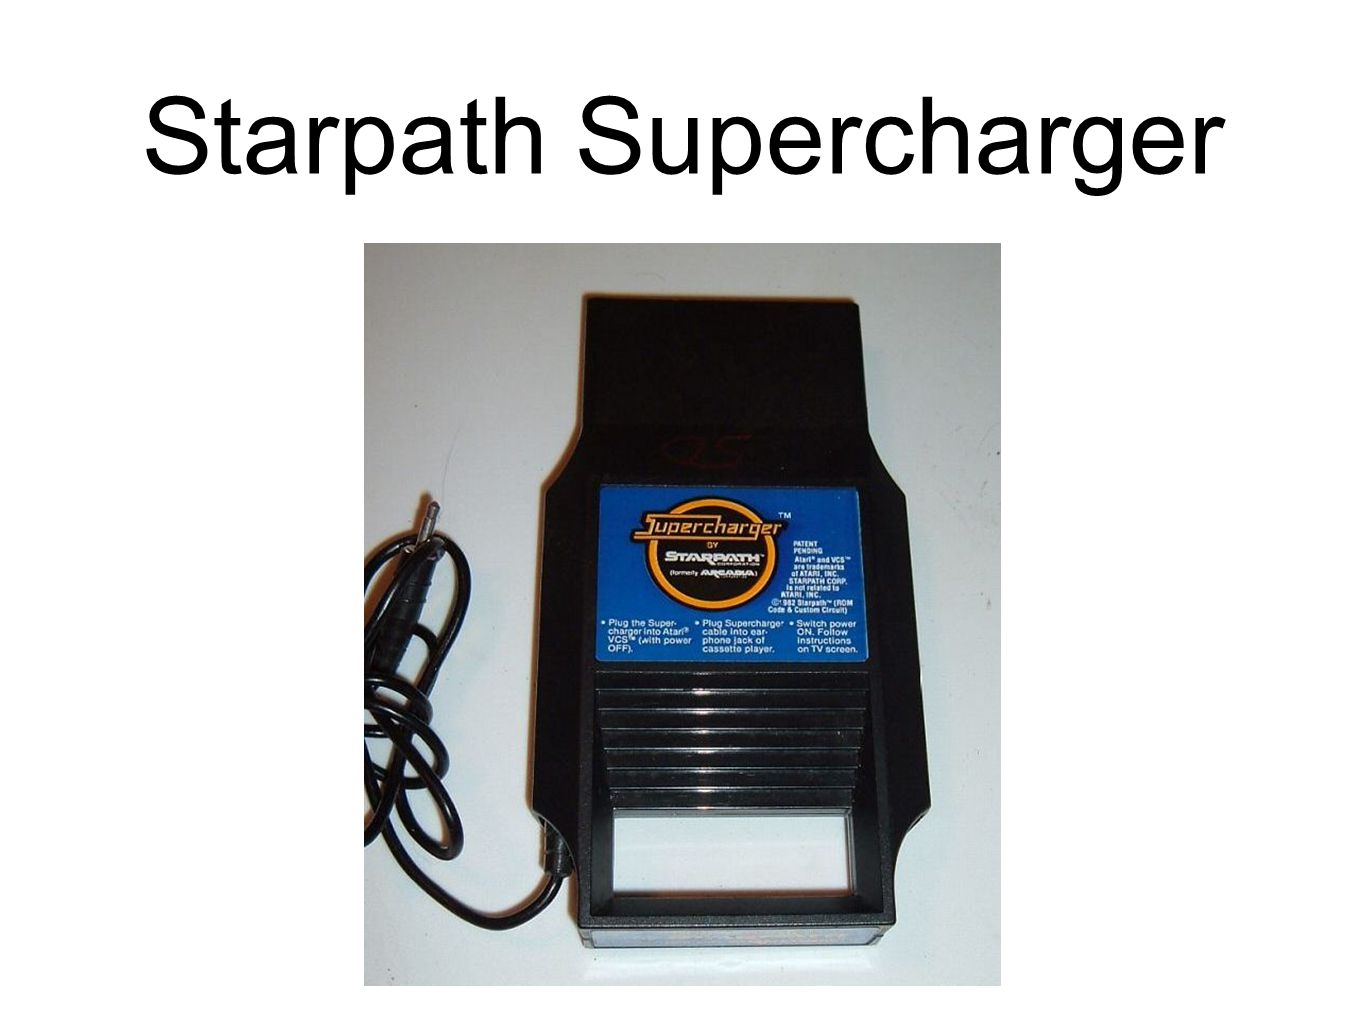 Starpath Supercharger